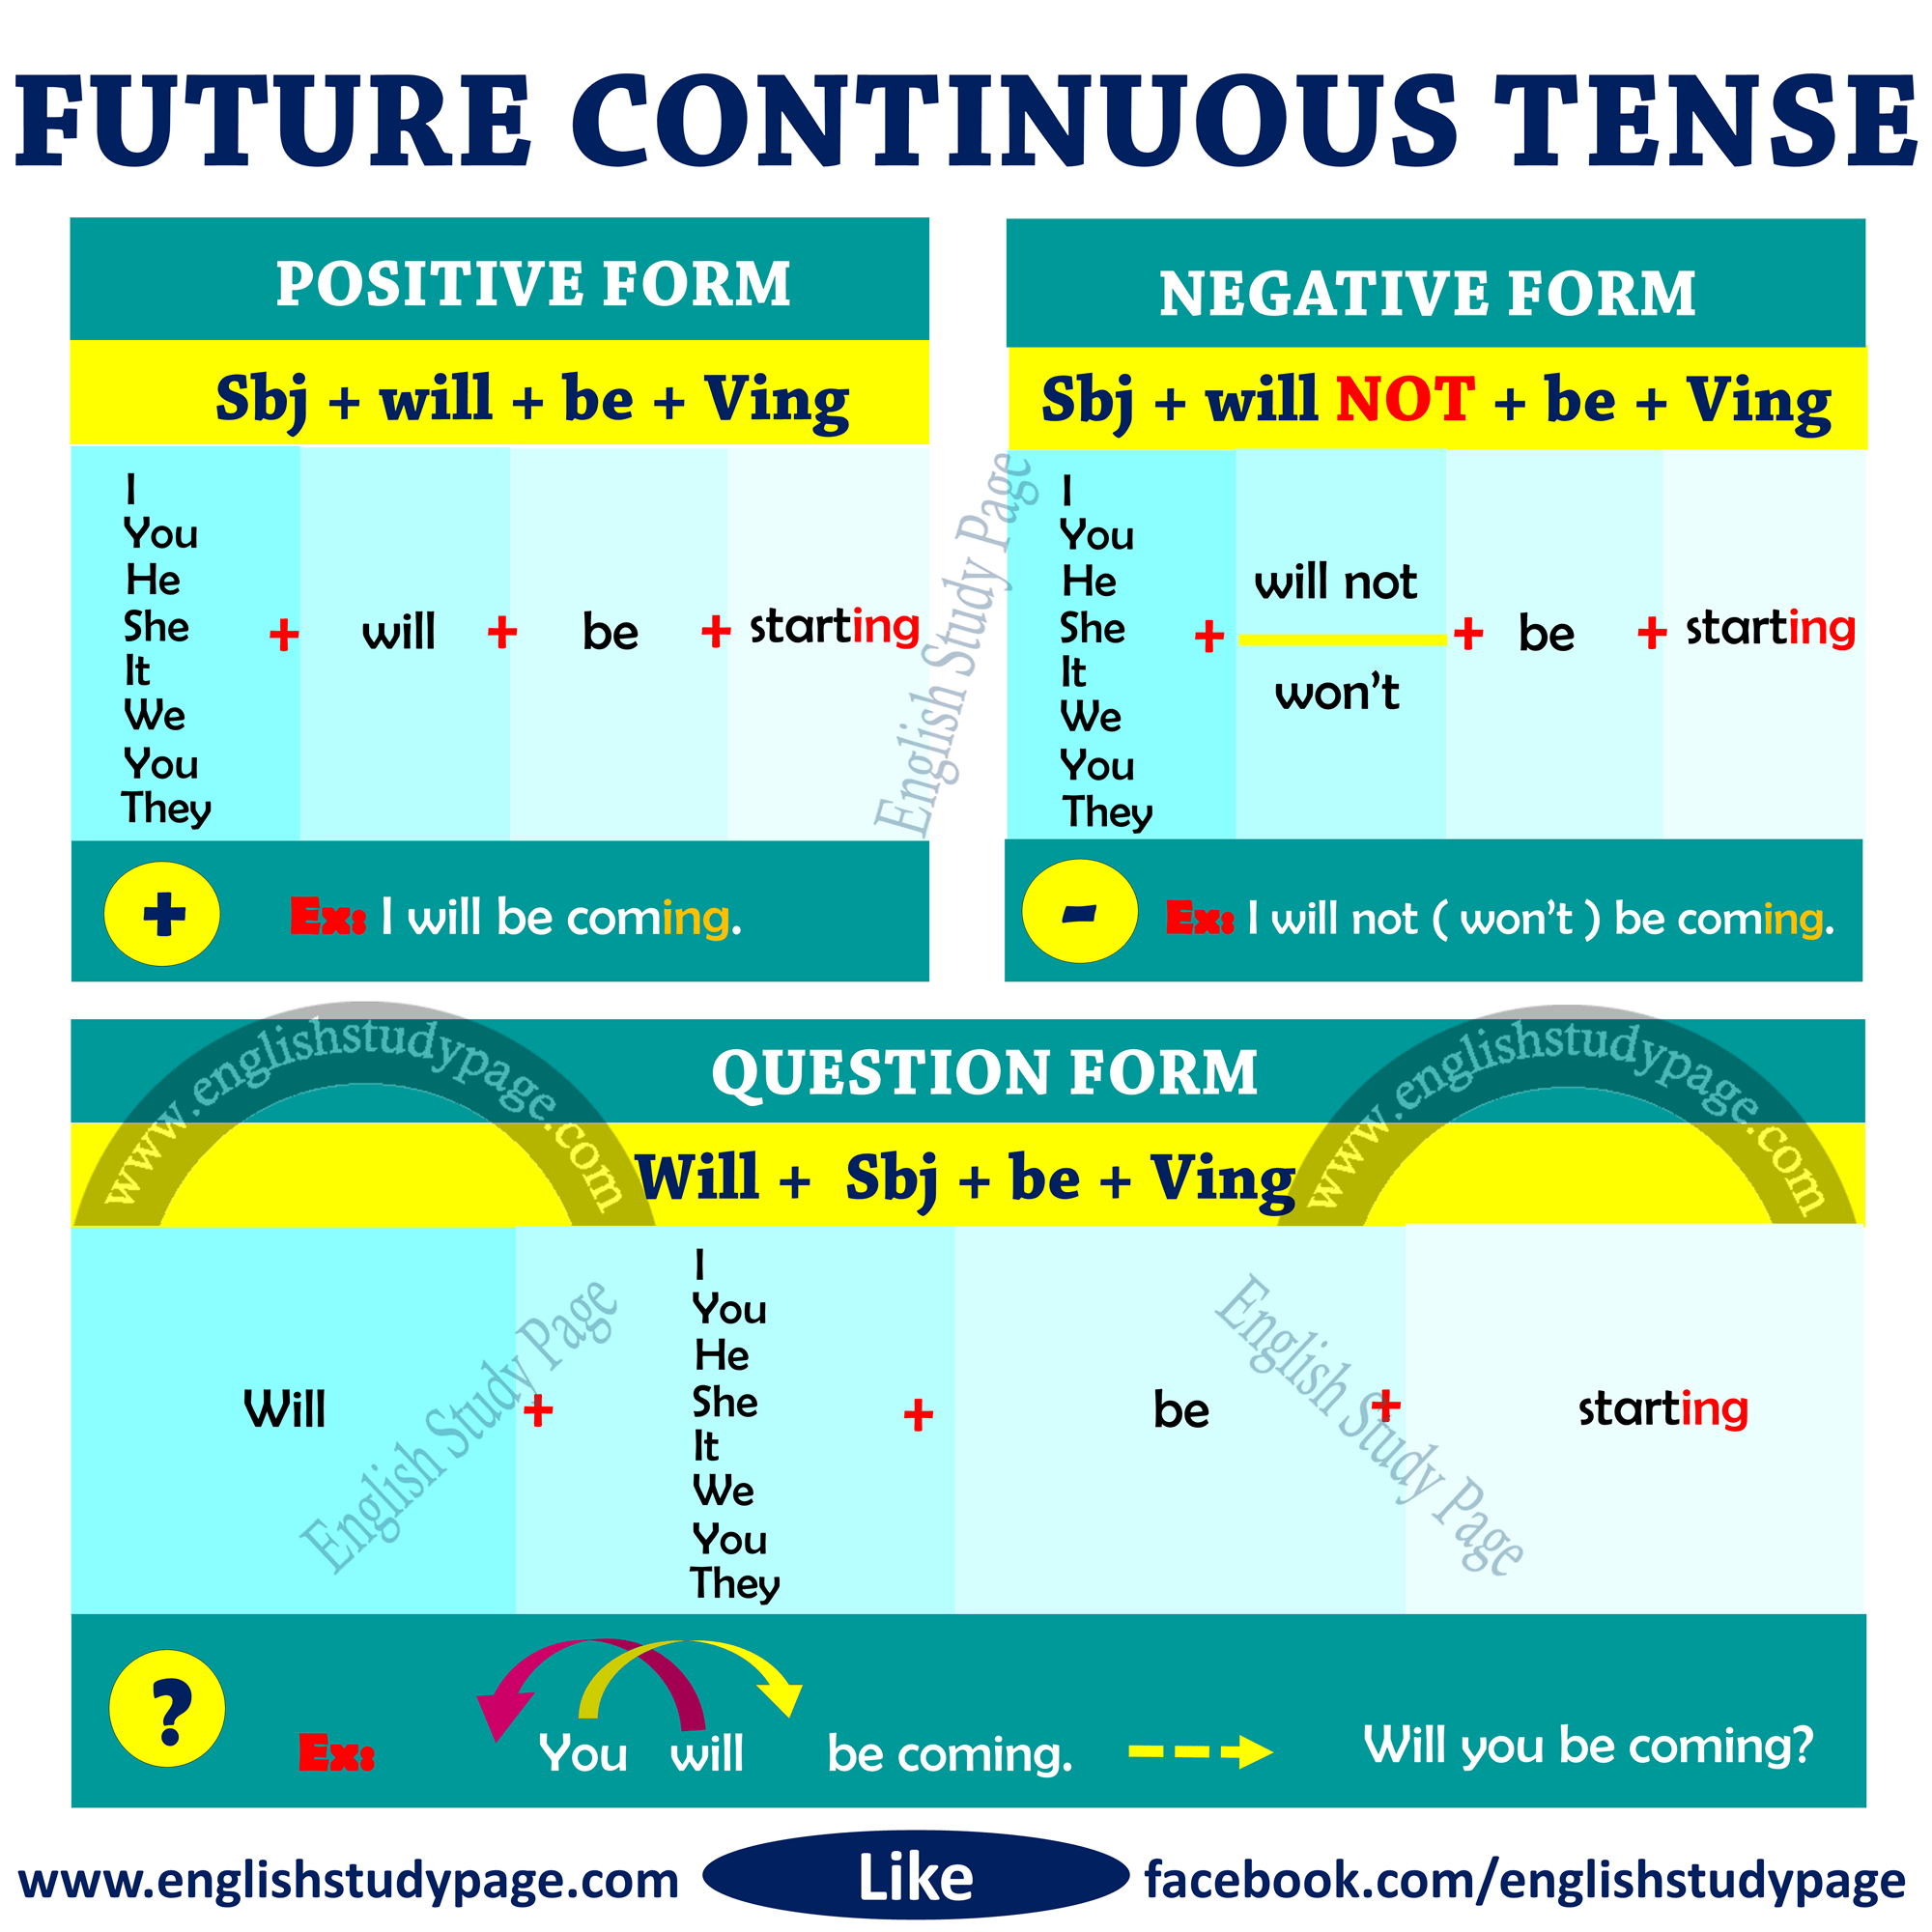 Structure Of Future Continuous Tense